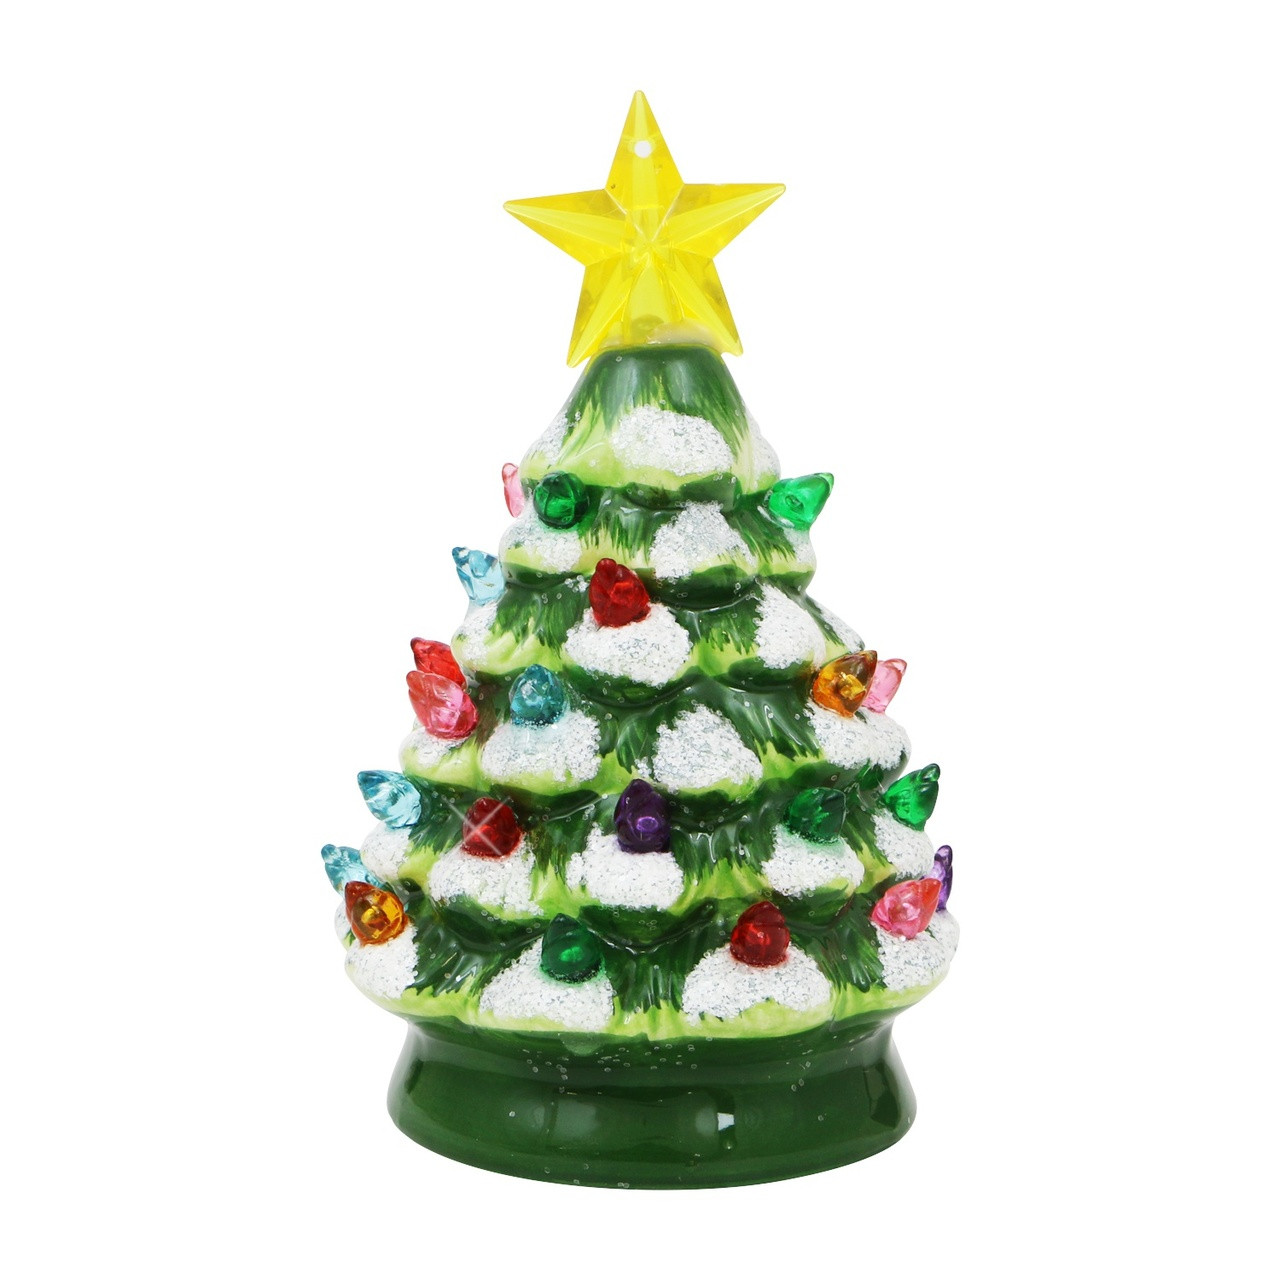 Ceramic Old Fashioned Light Up Christmas Tree 5 5 Inches